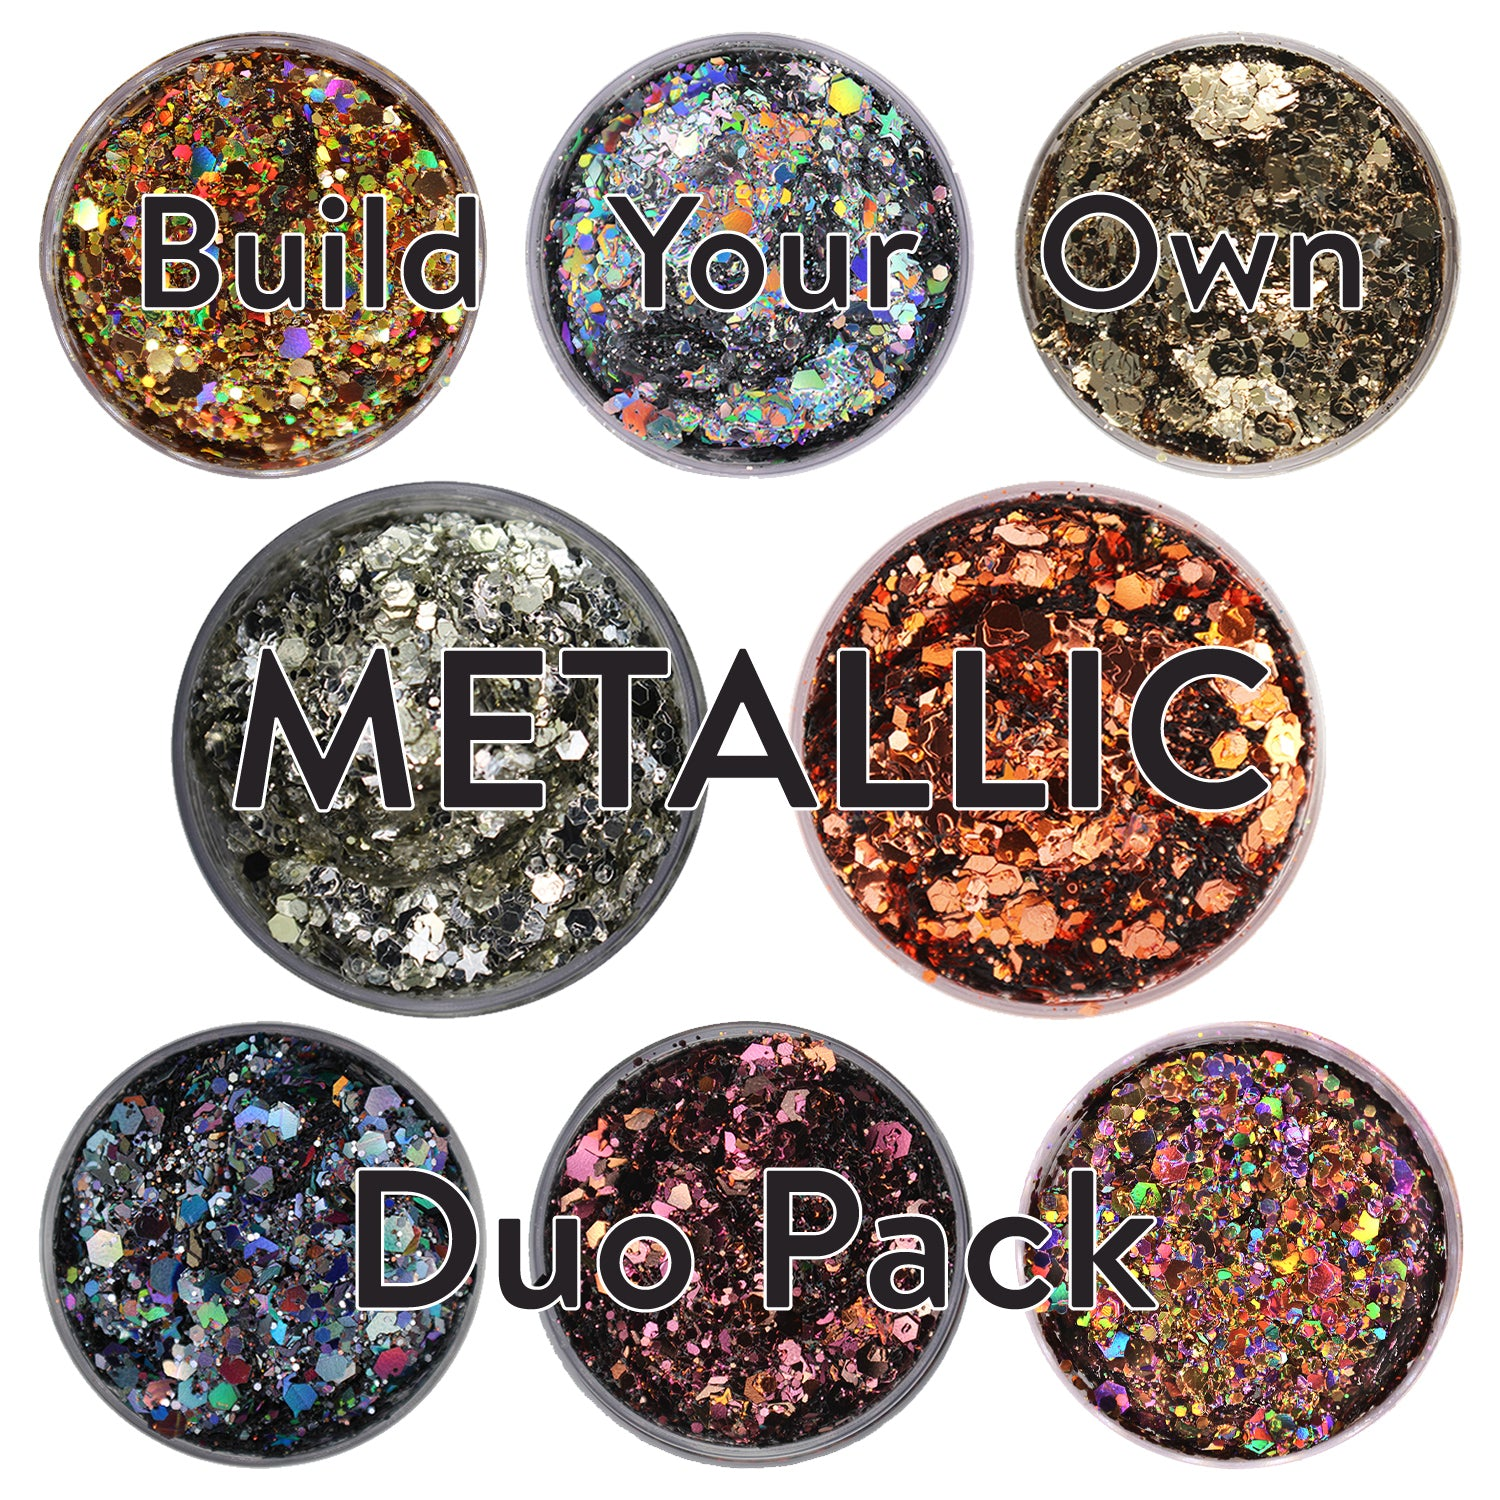 Build-Your-Own Duo Pack - Metallic - Small (19g)